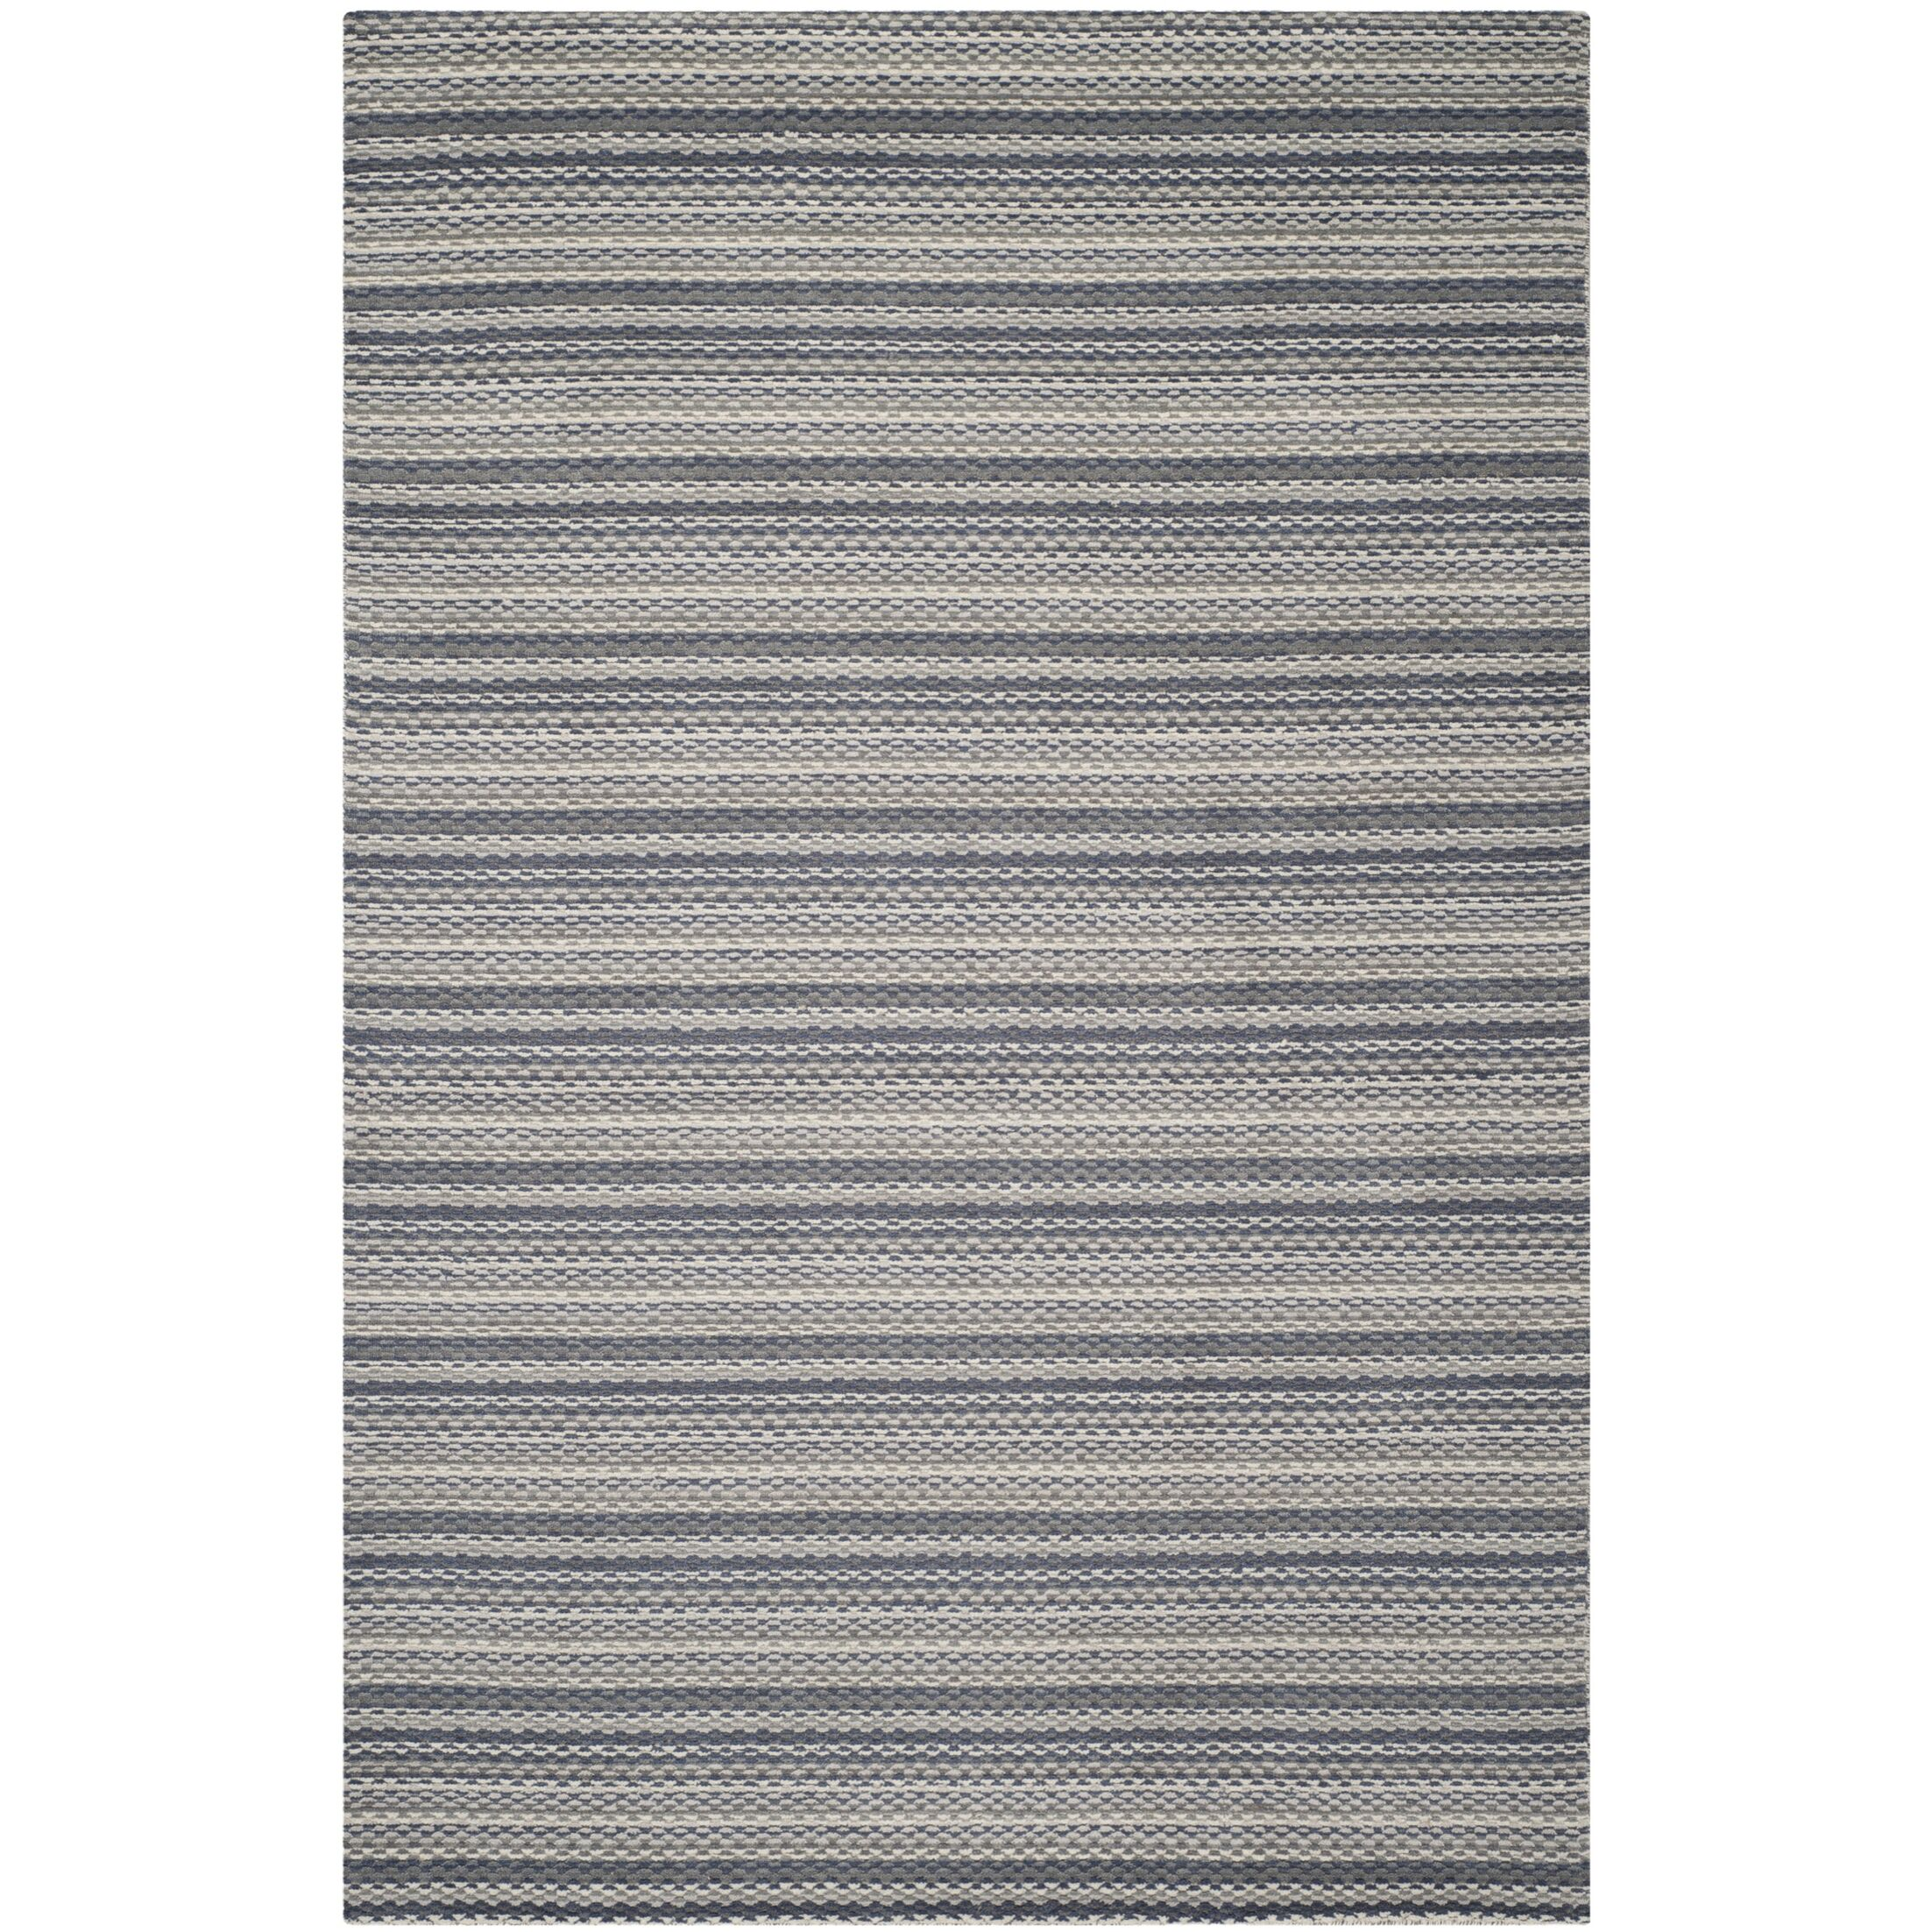 Keith Grey Area Rug Rug Size: Rectangle 6' x 9'